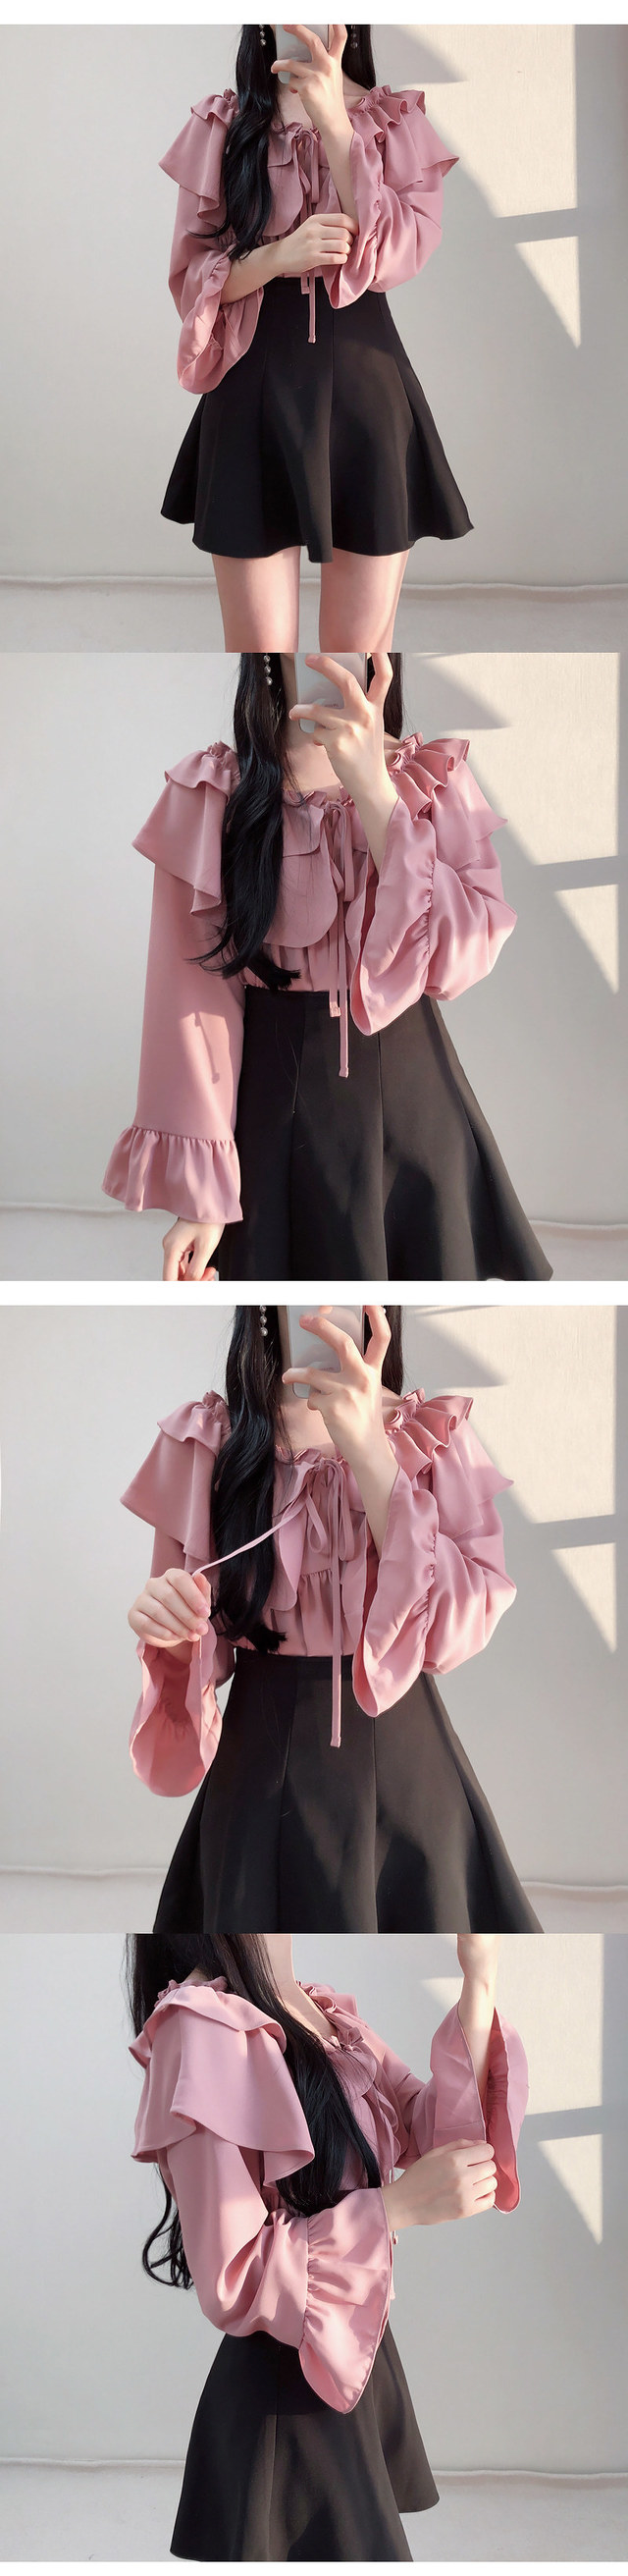 In-house production, order runaway ♥ cankon ruffle blouse